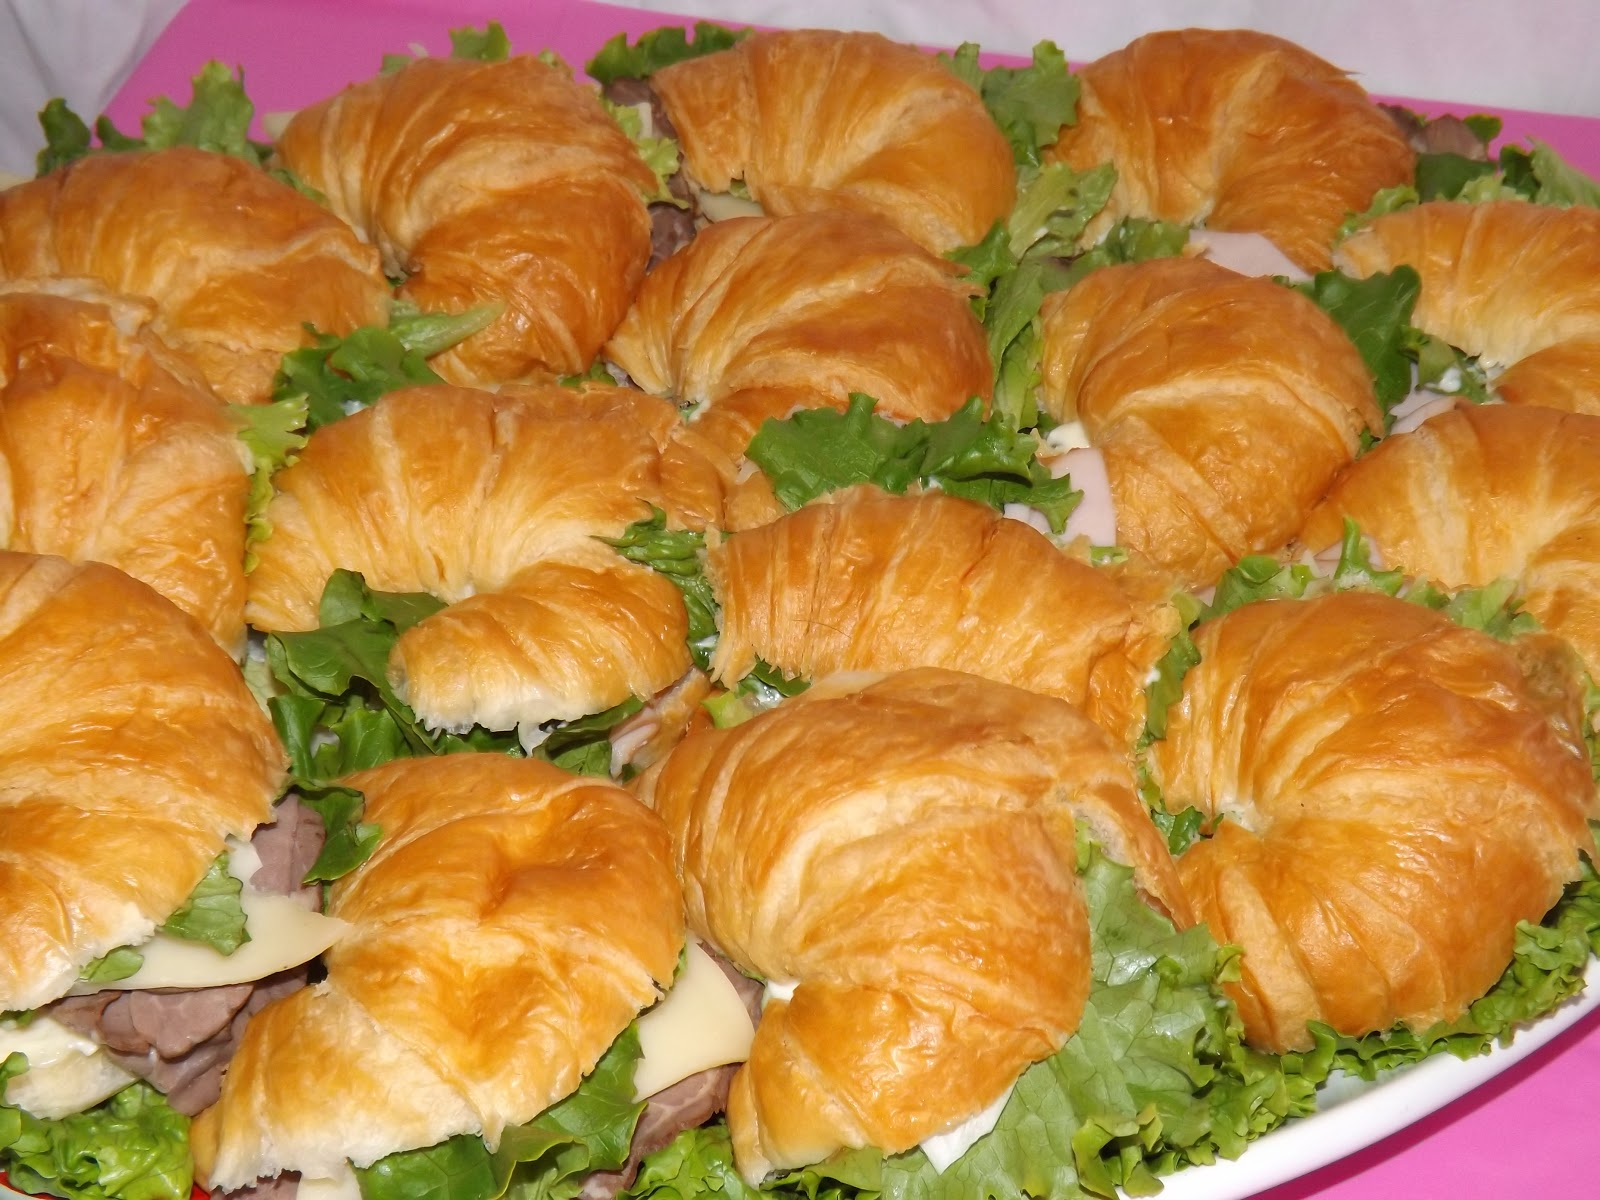 Yummy croissant sandwiches with turkey, roast beef, Swiss cheeses ...